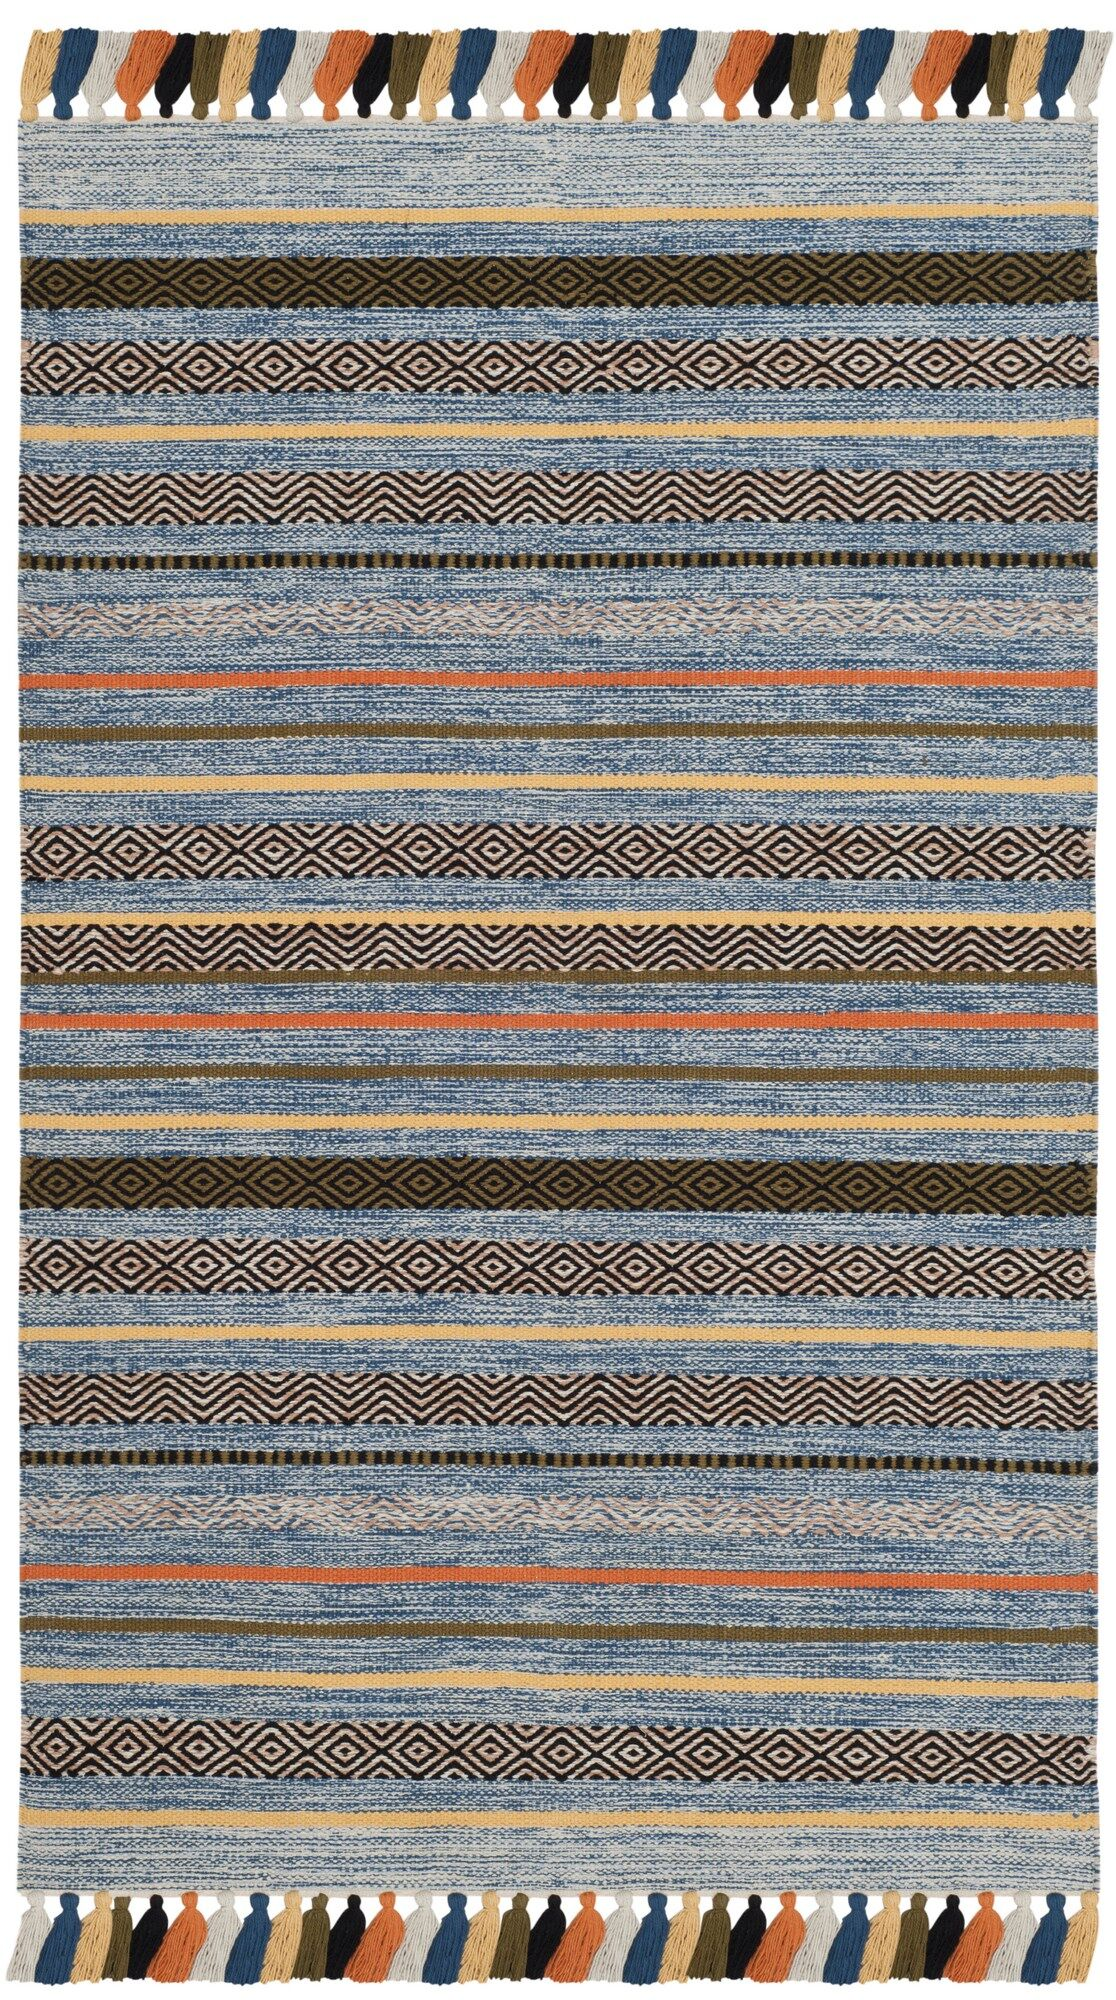 Trenton Hand-Woven Cotton Blue Area Rug Rug Size: Square 6'